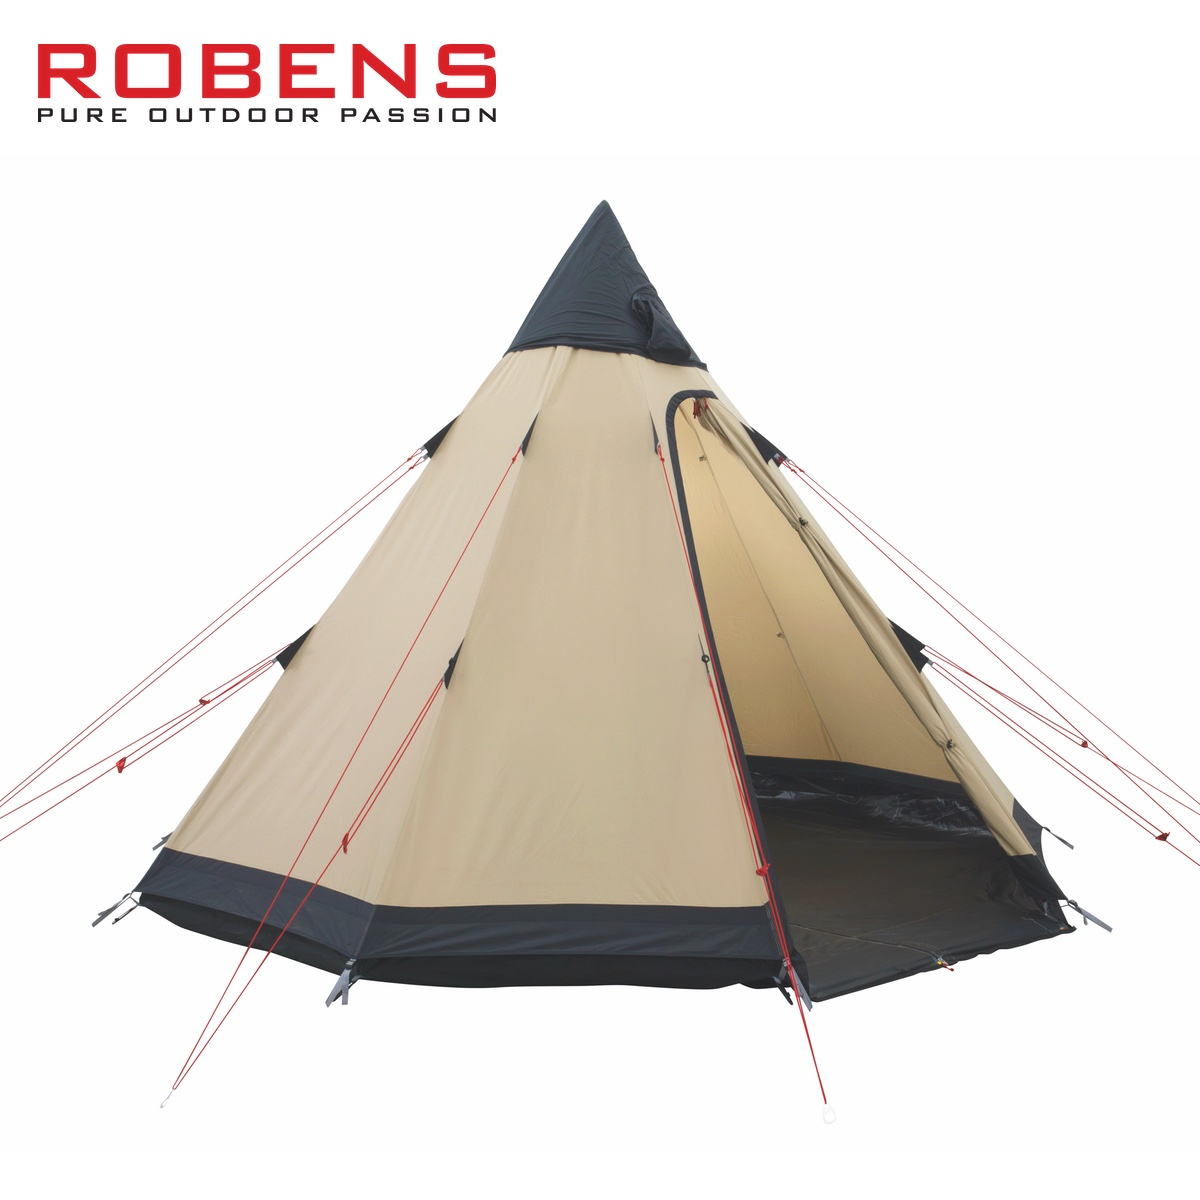 Robens Cherokee Tent - 2018 Model  sc 1 st  Purely Outdoors & Robens Cherokee Tent - 2018 Model | Purely Outdoors